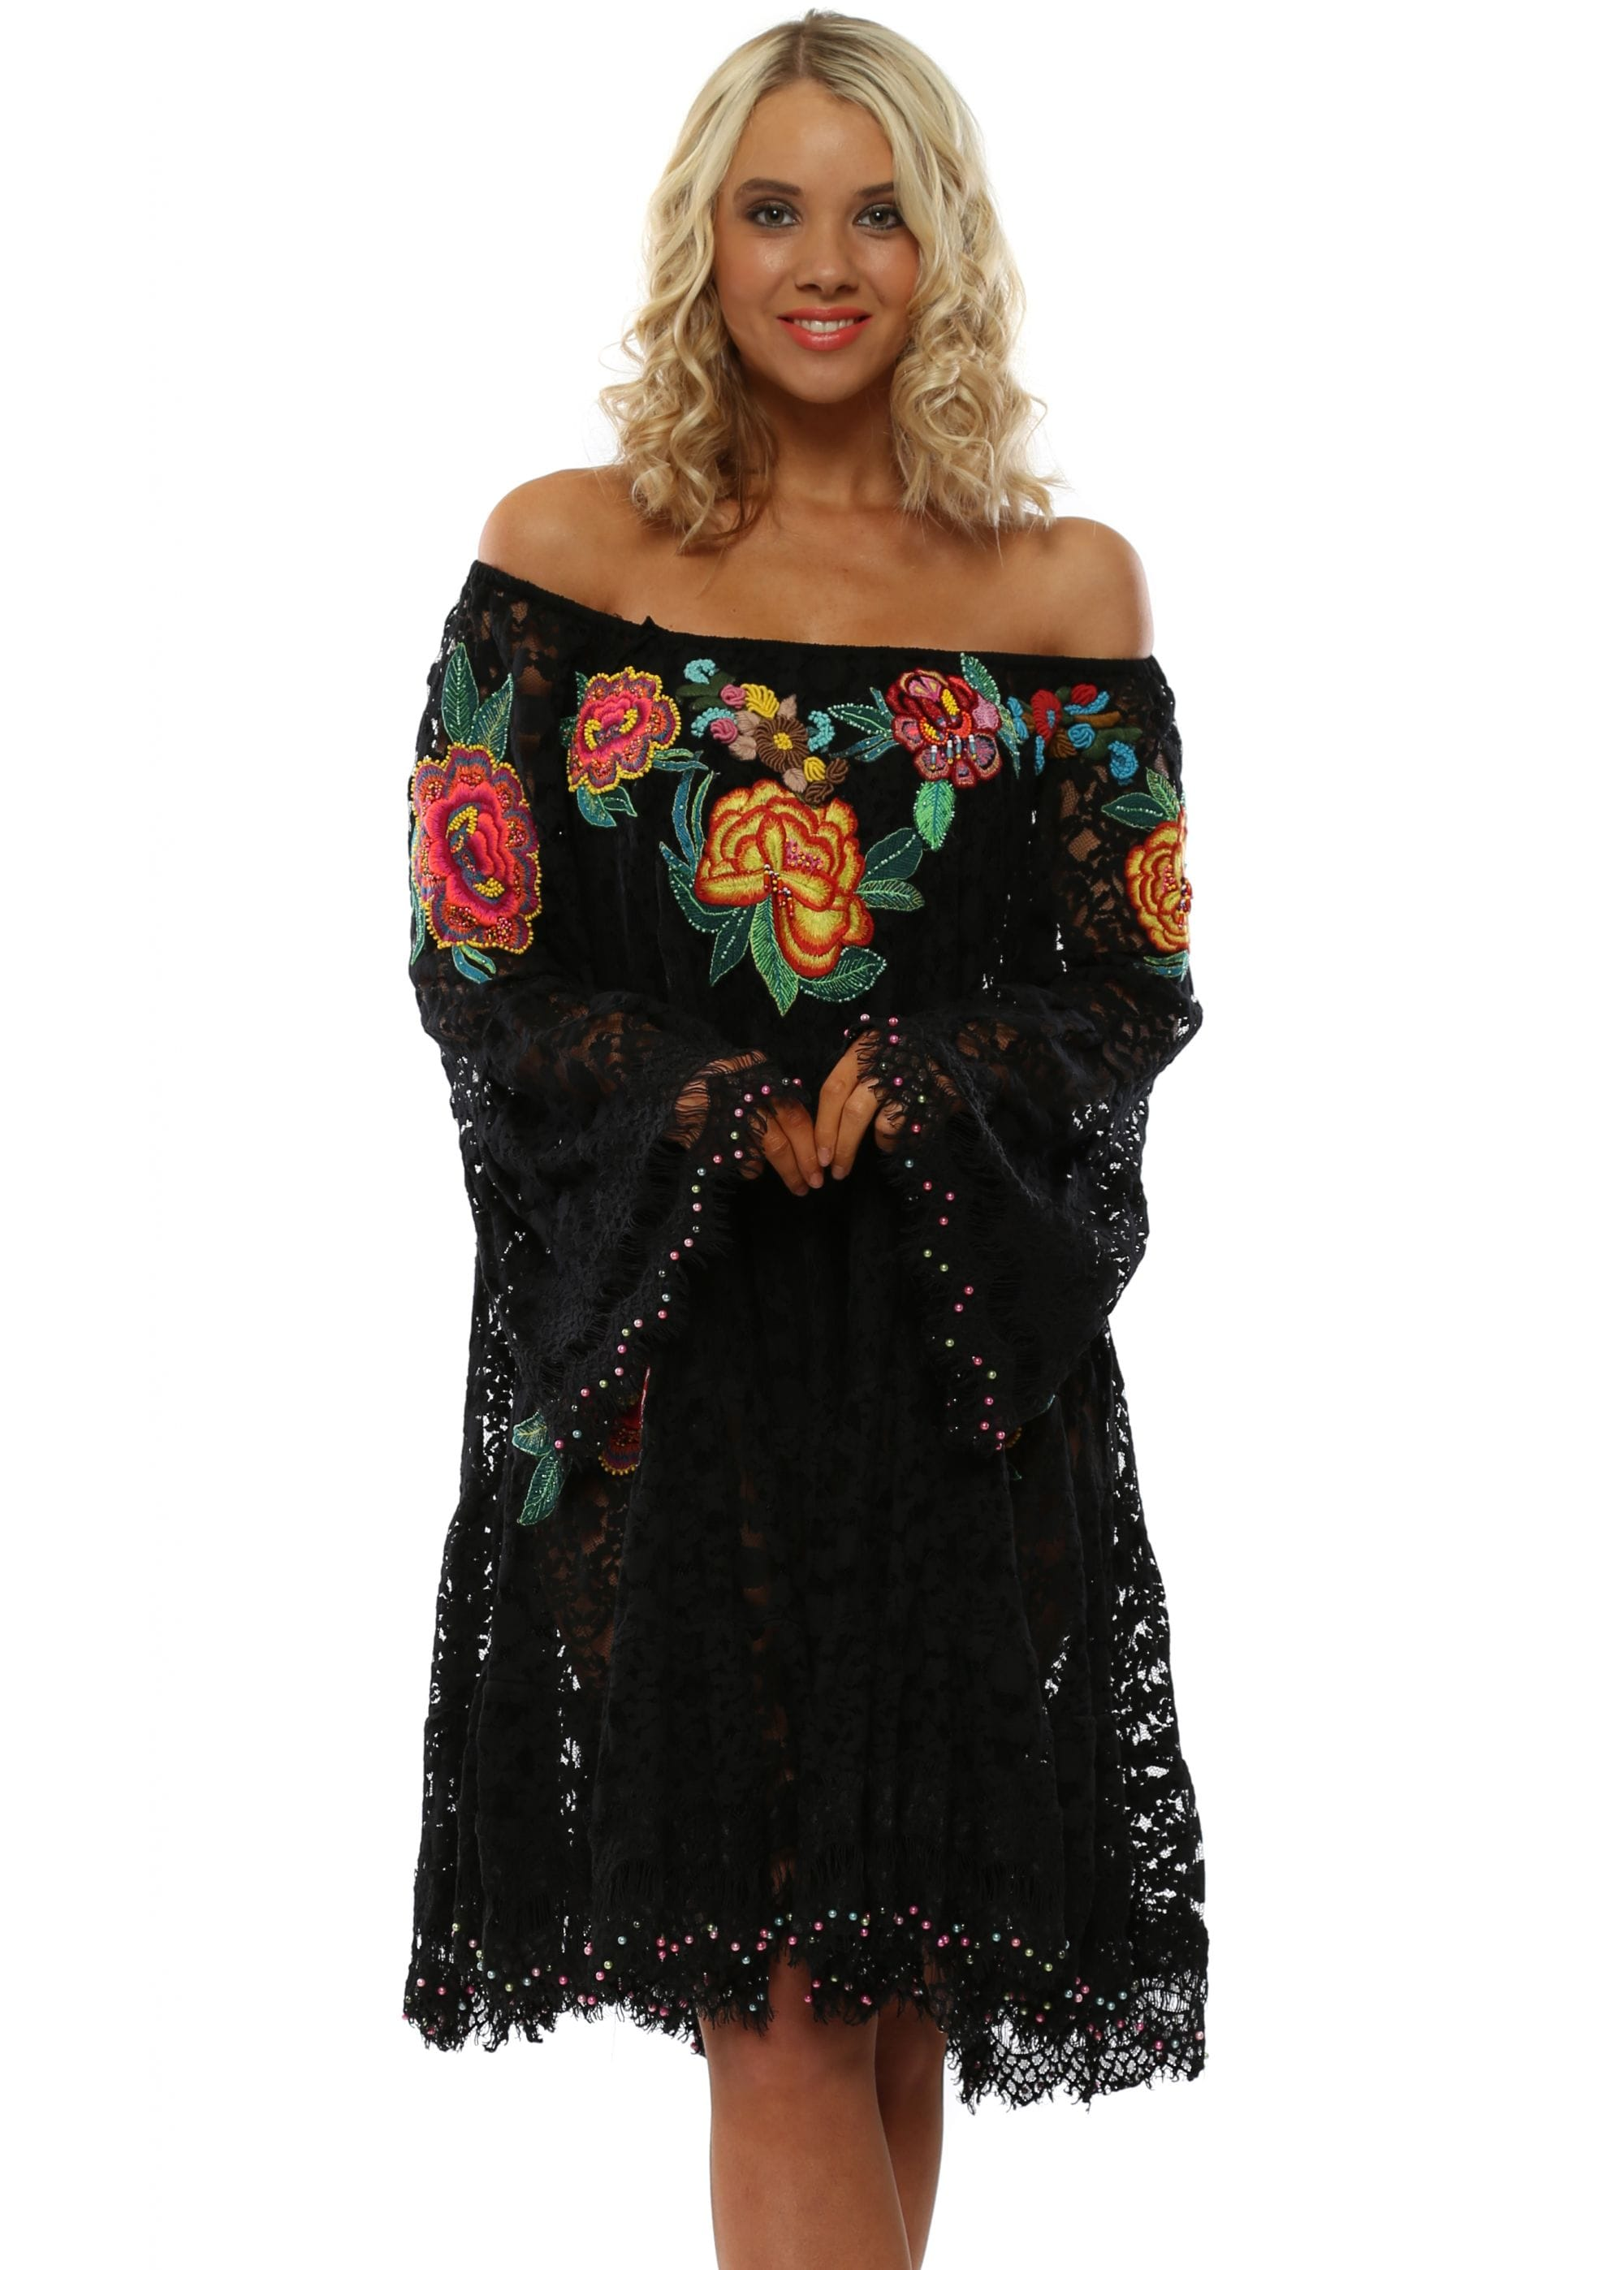 Antica Sartoria Black Lace Floral Embellished Bardot Dress